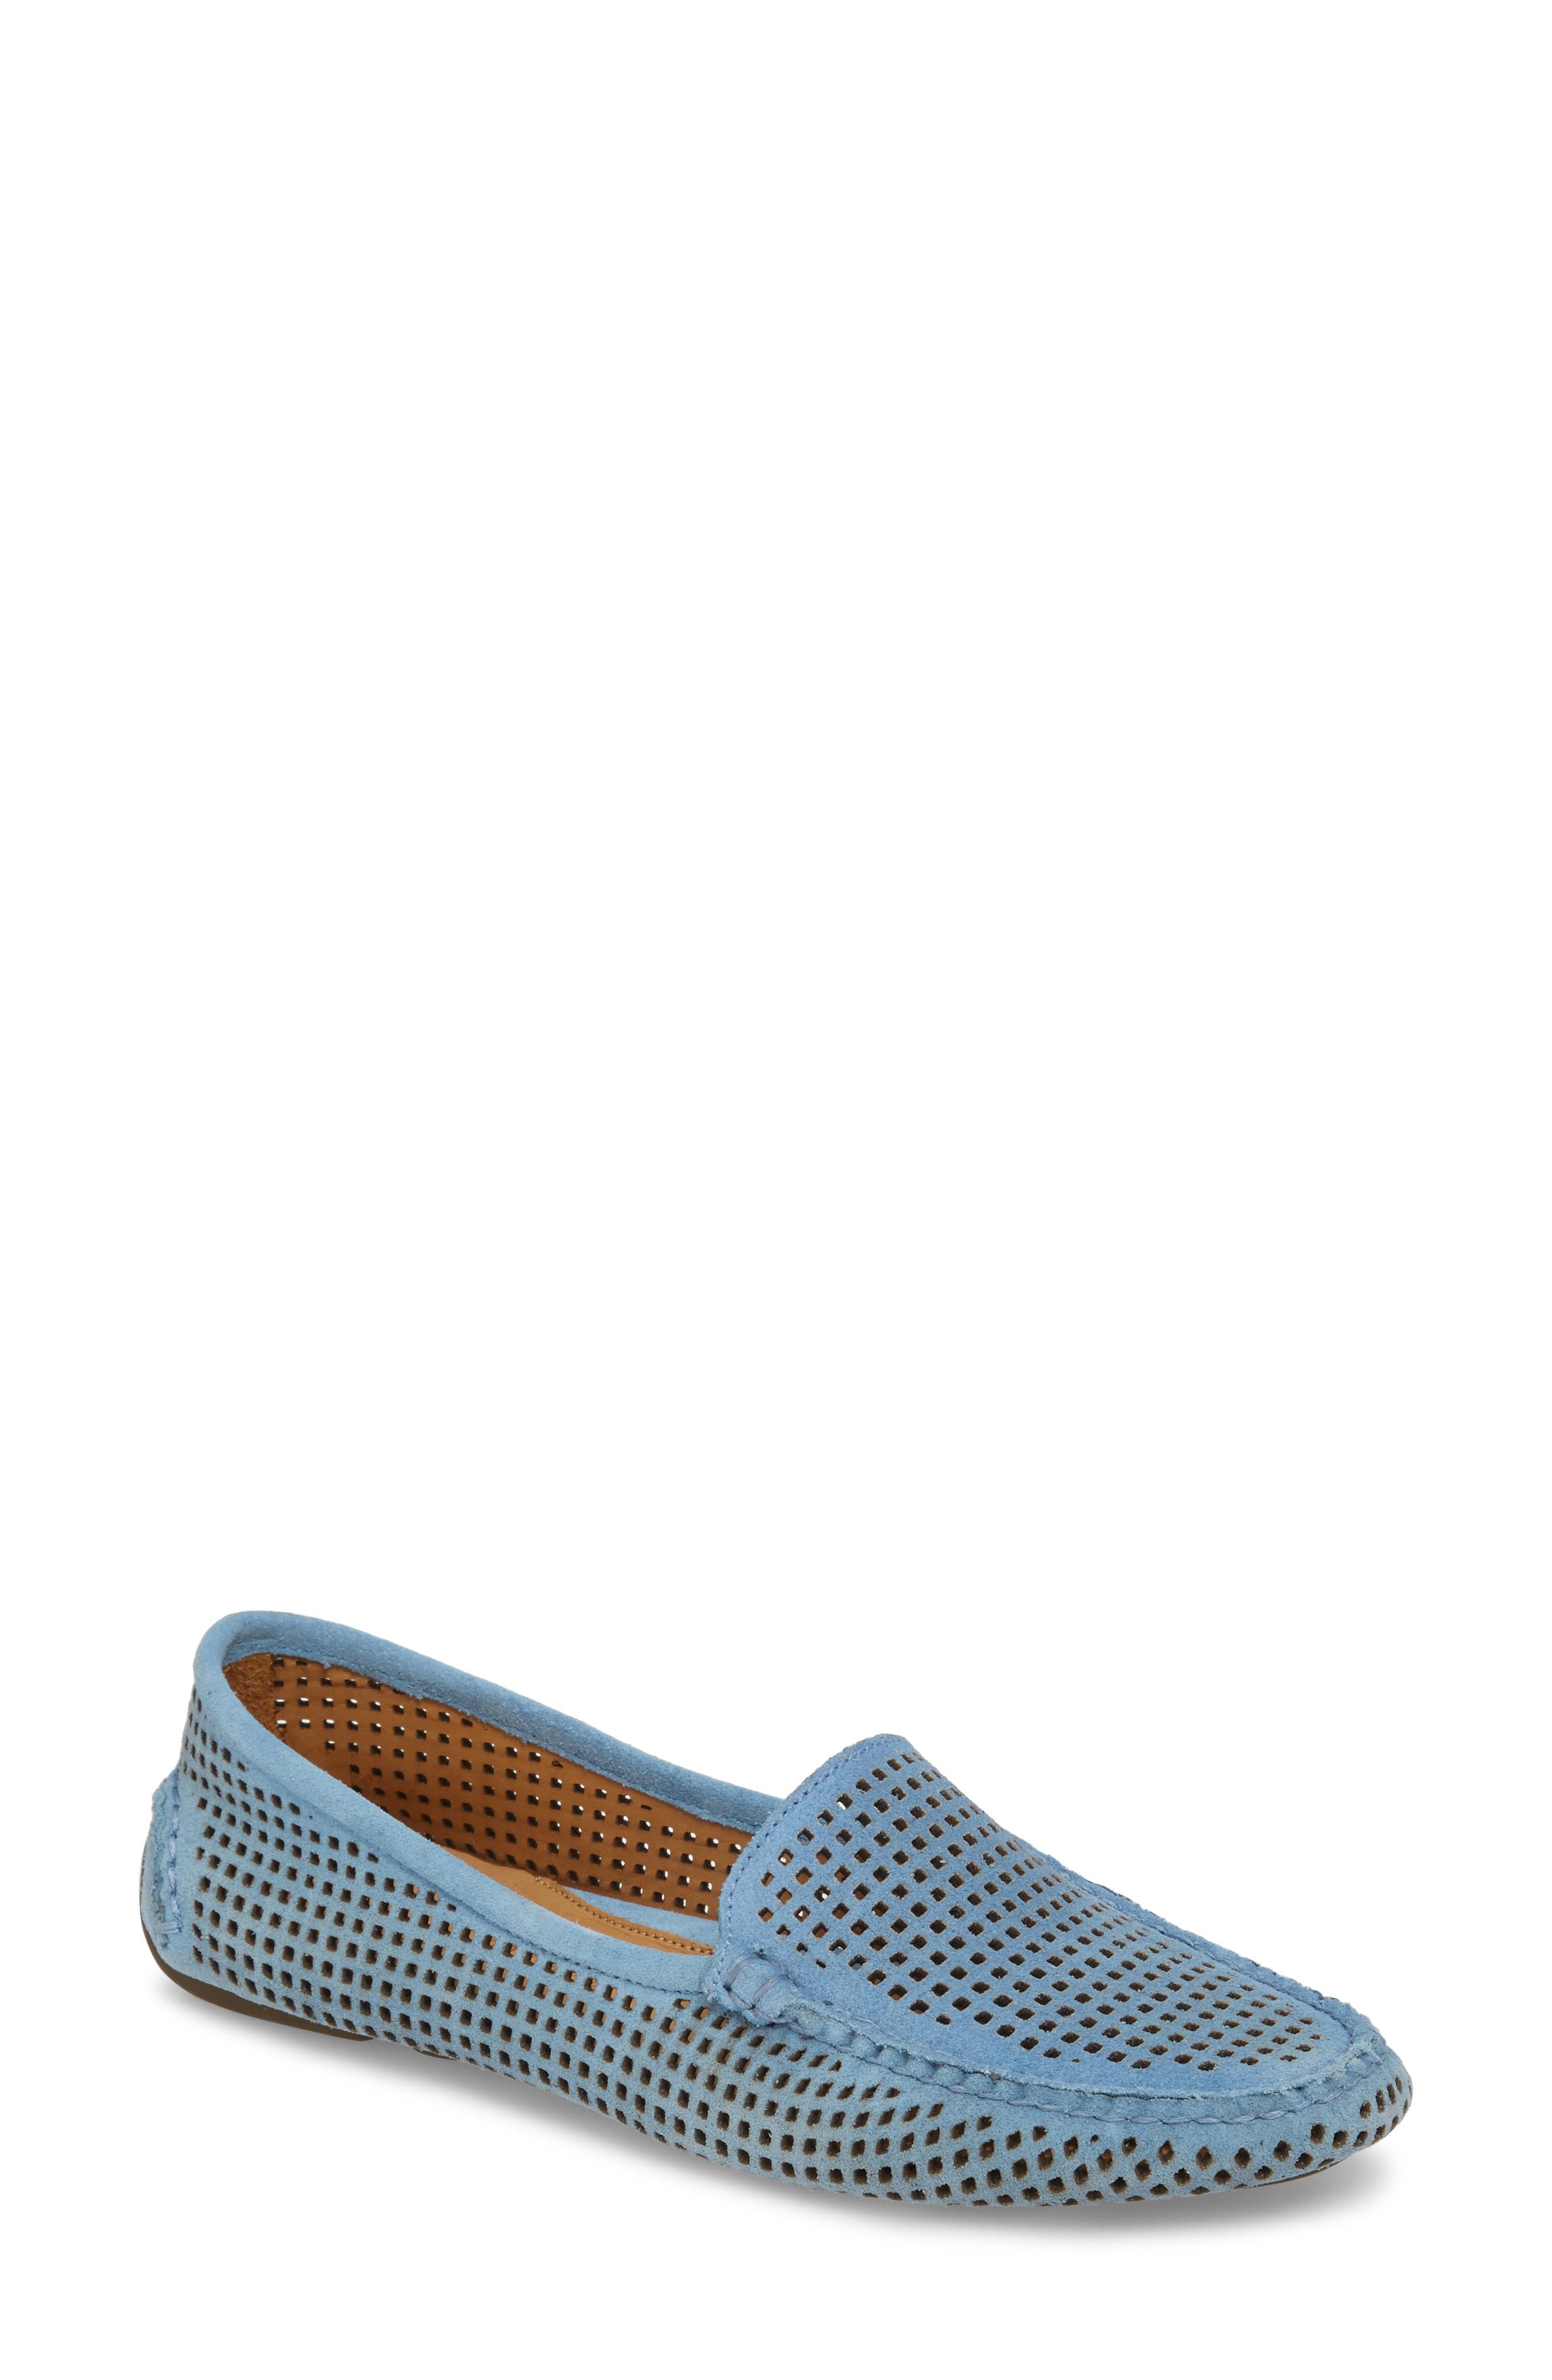 'Barrie' Flat,                             Main thumbnail 1, color,                             FRENCH BLUE SUEDE